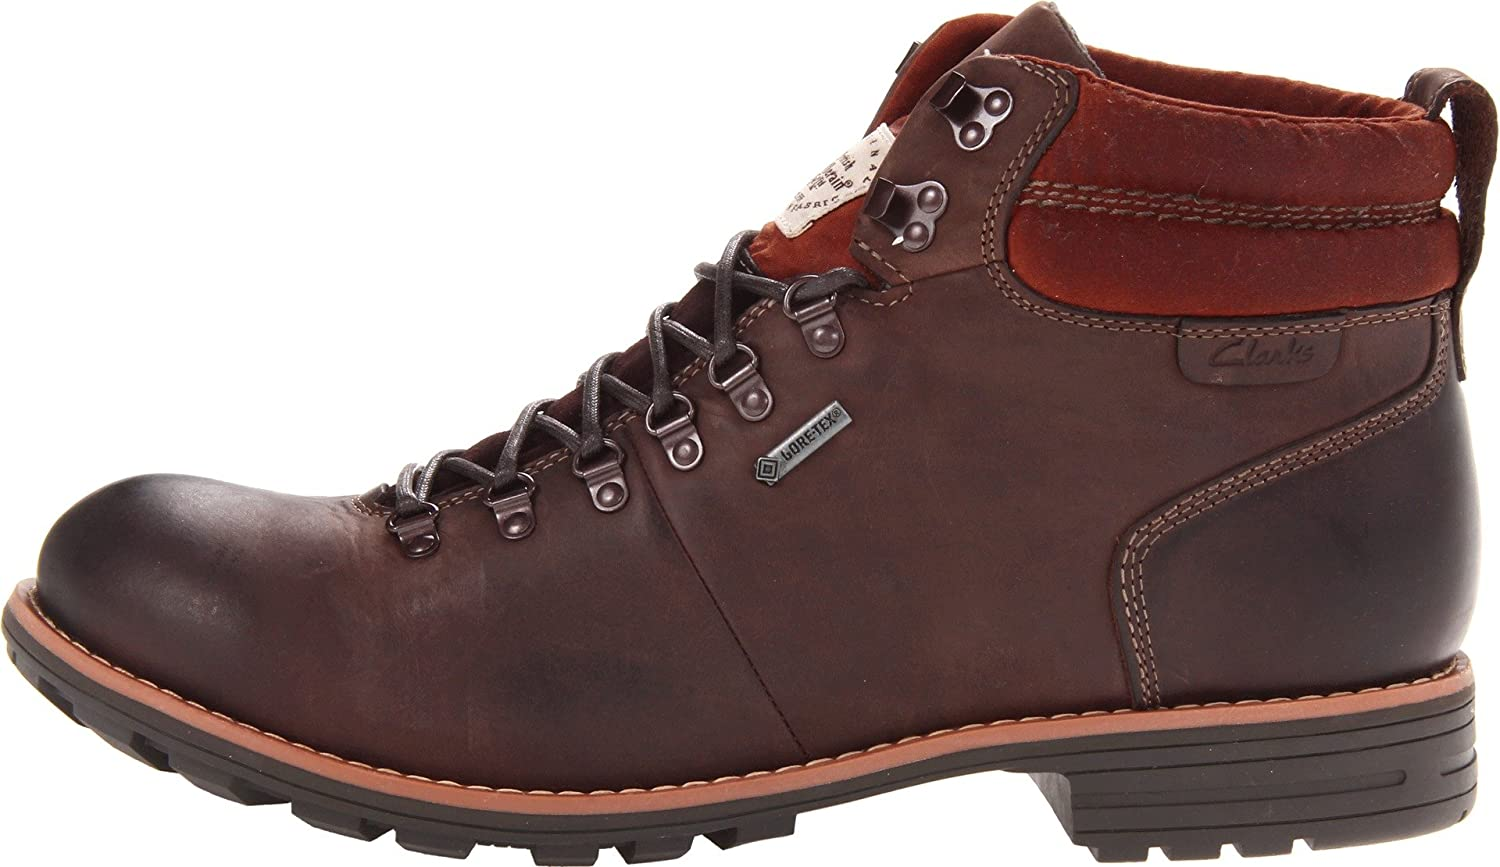 Clarks 66183 Mens Midford Alp Leather Brown Lea 13 M/UK 12: Amazon.co.uk:  Shoes & Bags